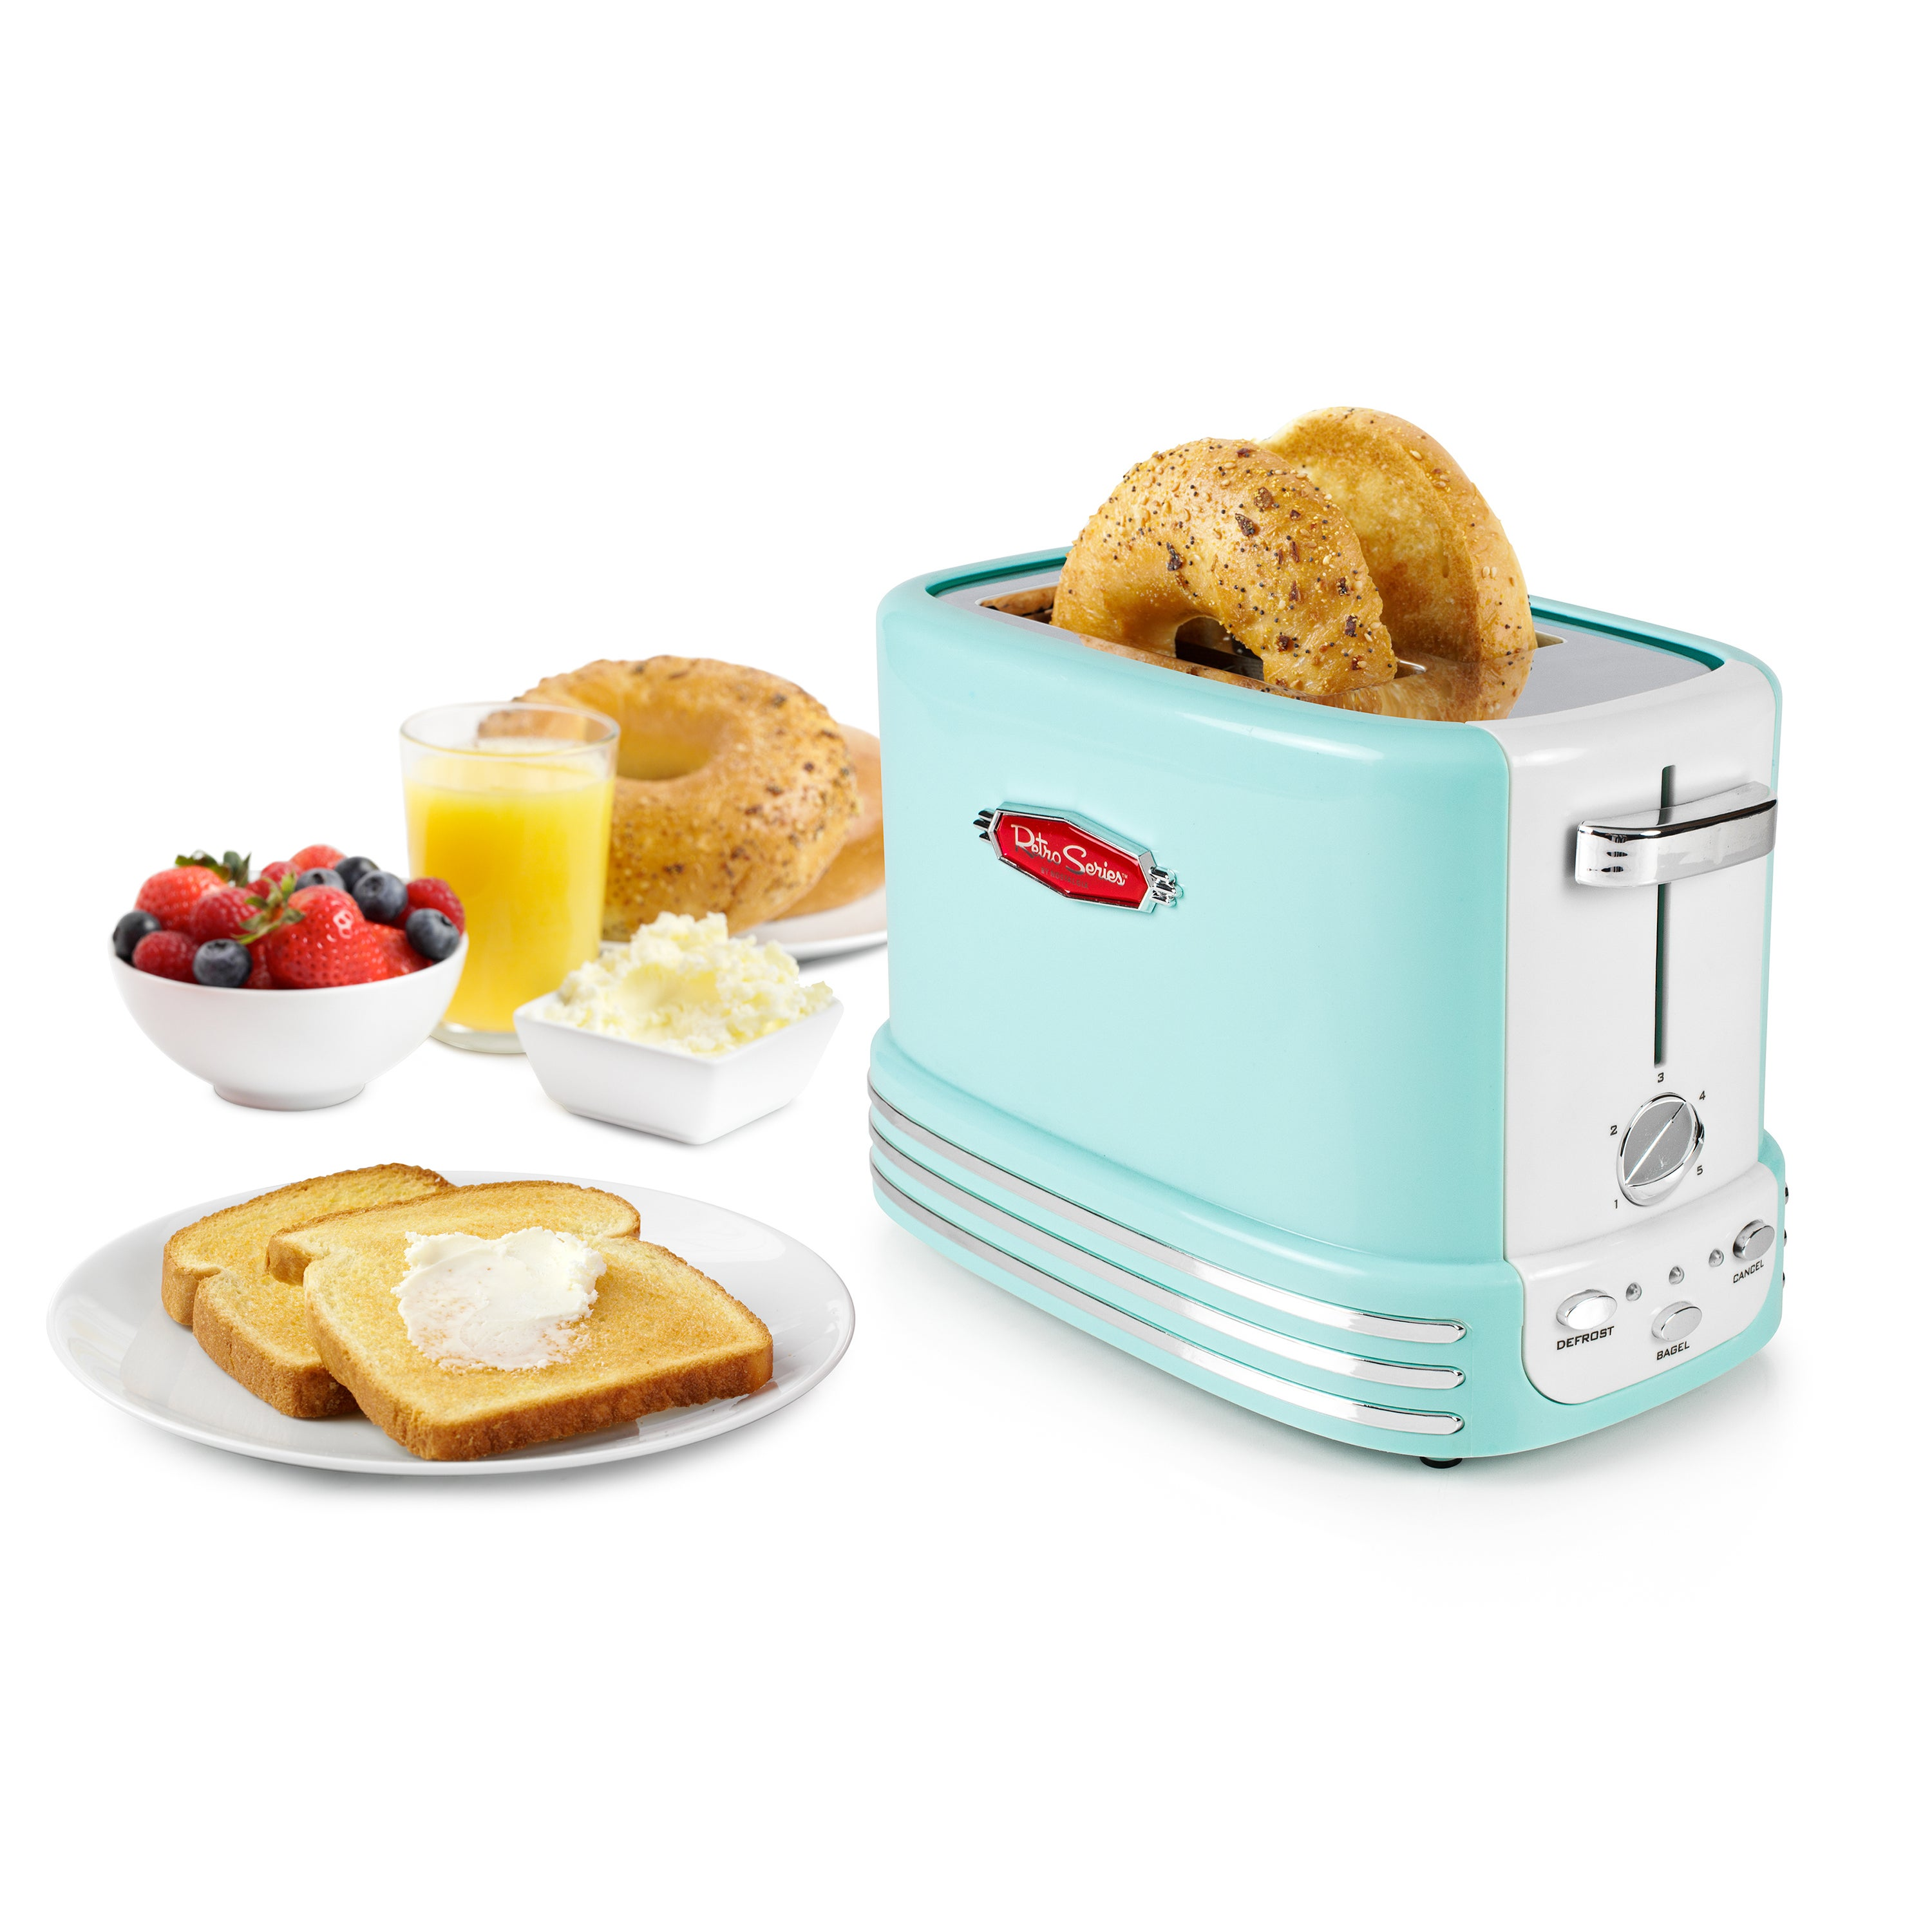 impingement get conveyor bagel latest the to radiant in with technology holman star and toasting perfect s is that consistently itoaster sefa new toast toaster